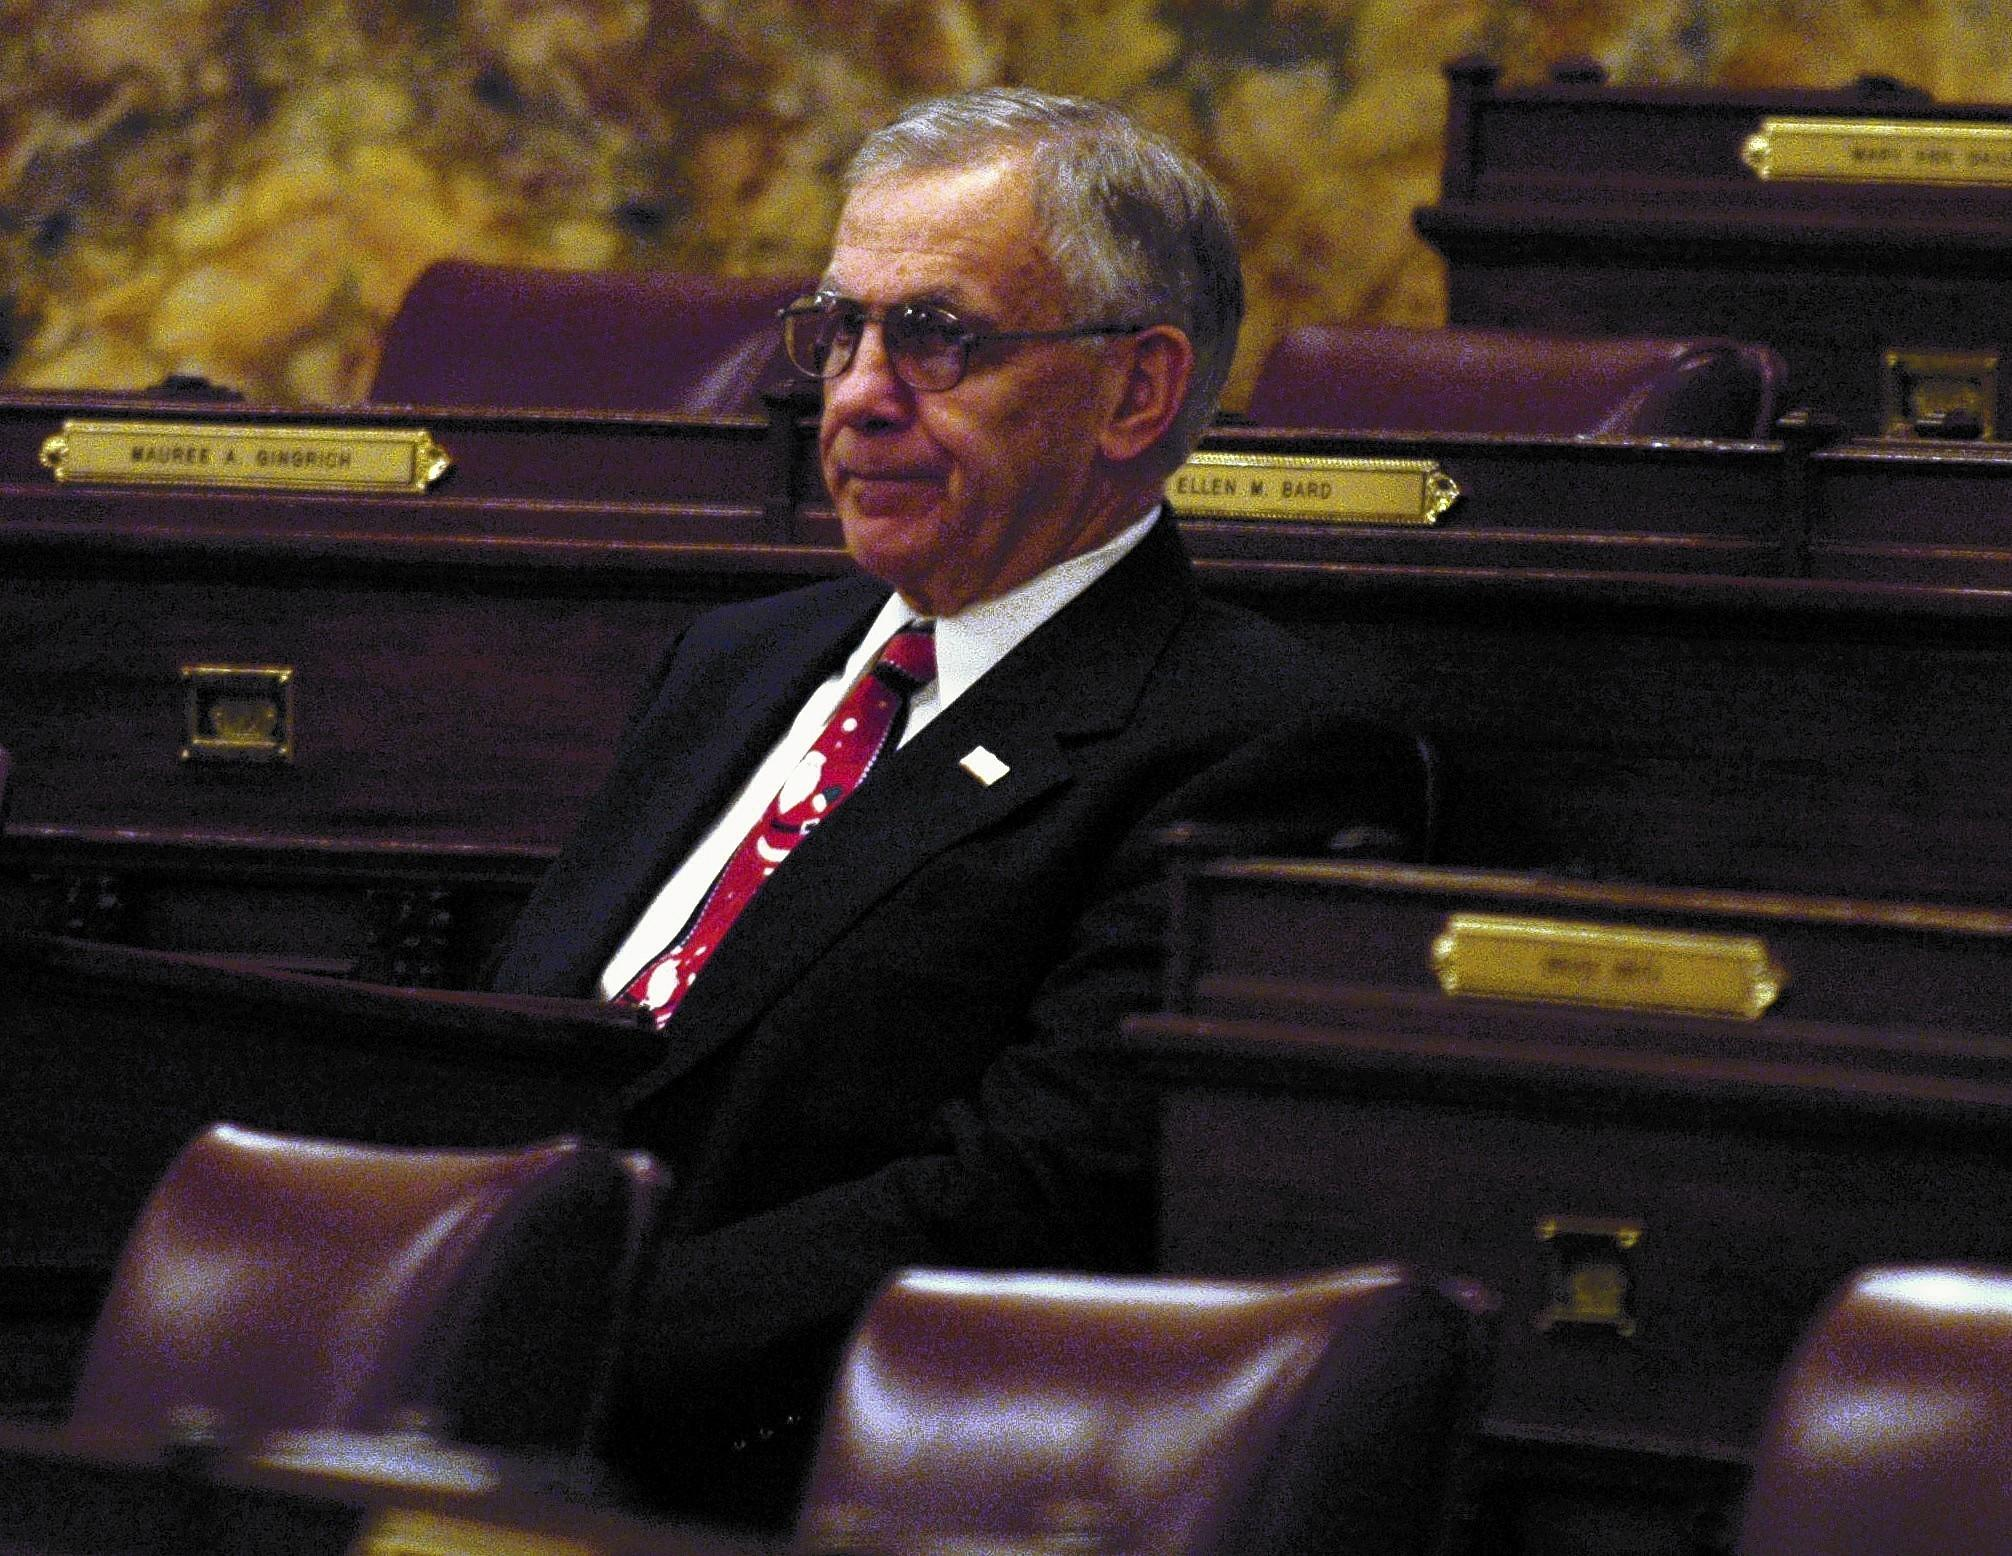 State Rep. Paul Clymer, R-Bucks, shown at his seat in Harrisburg, may facilitate the consideration of legislation to help students threatened by perfume allergies.